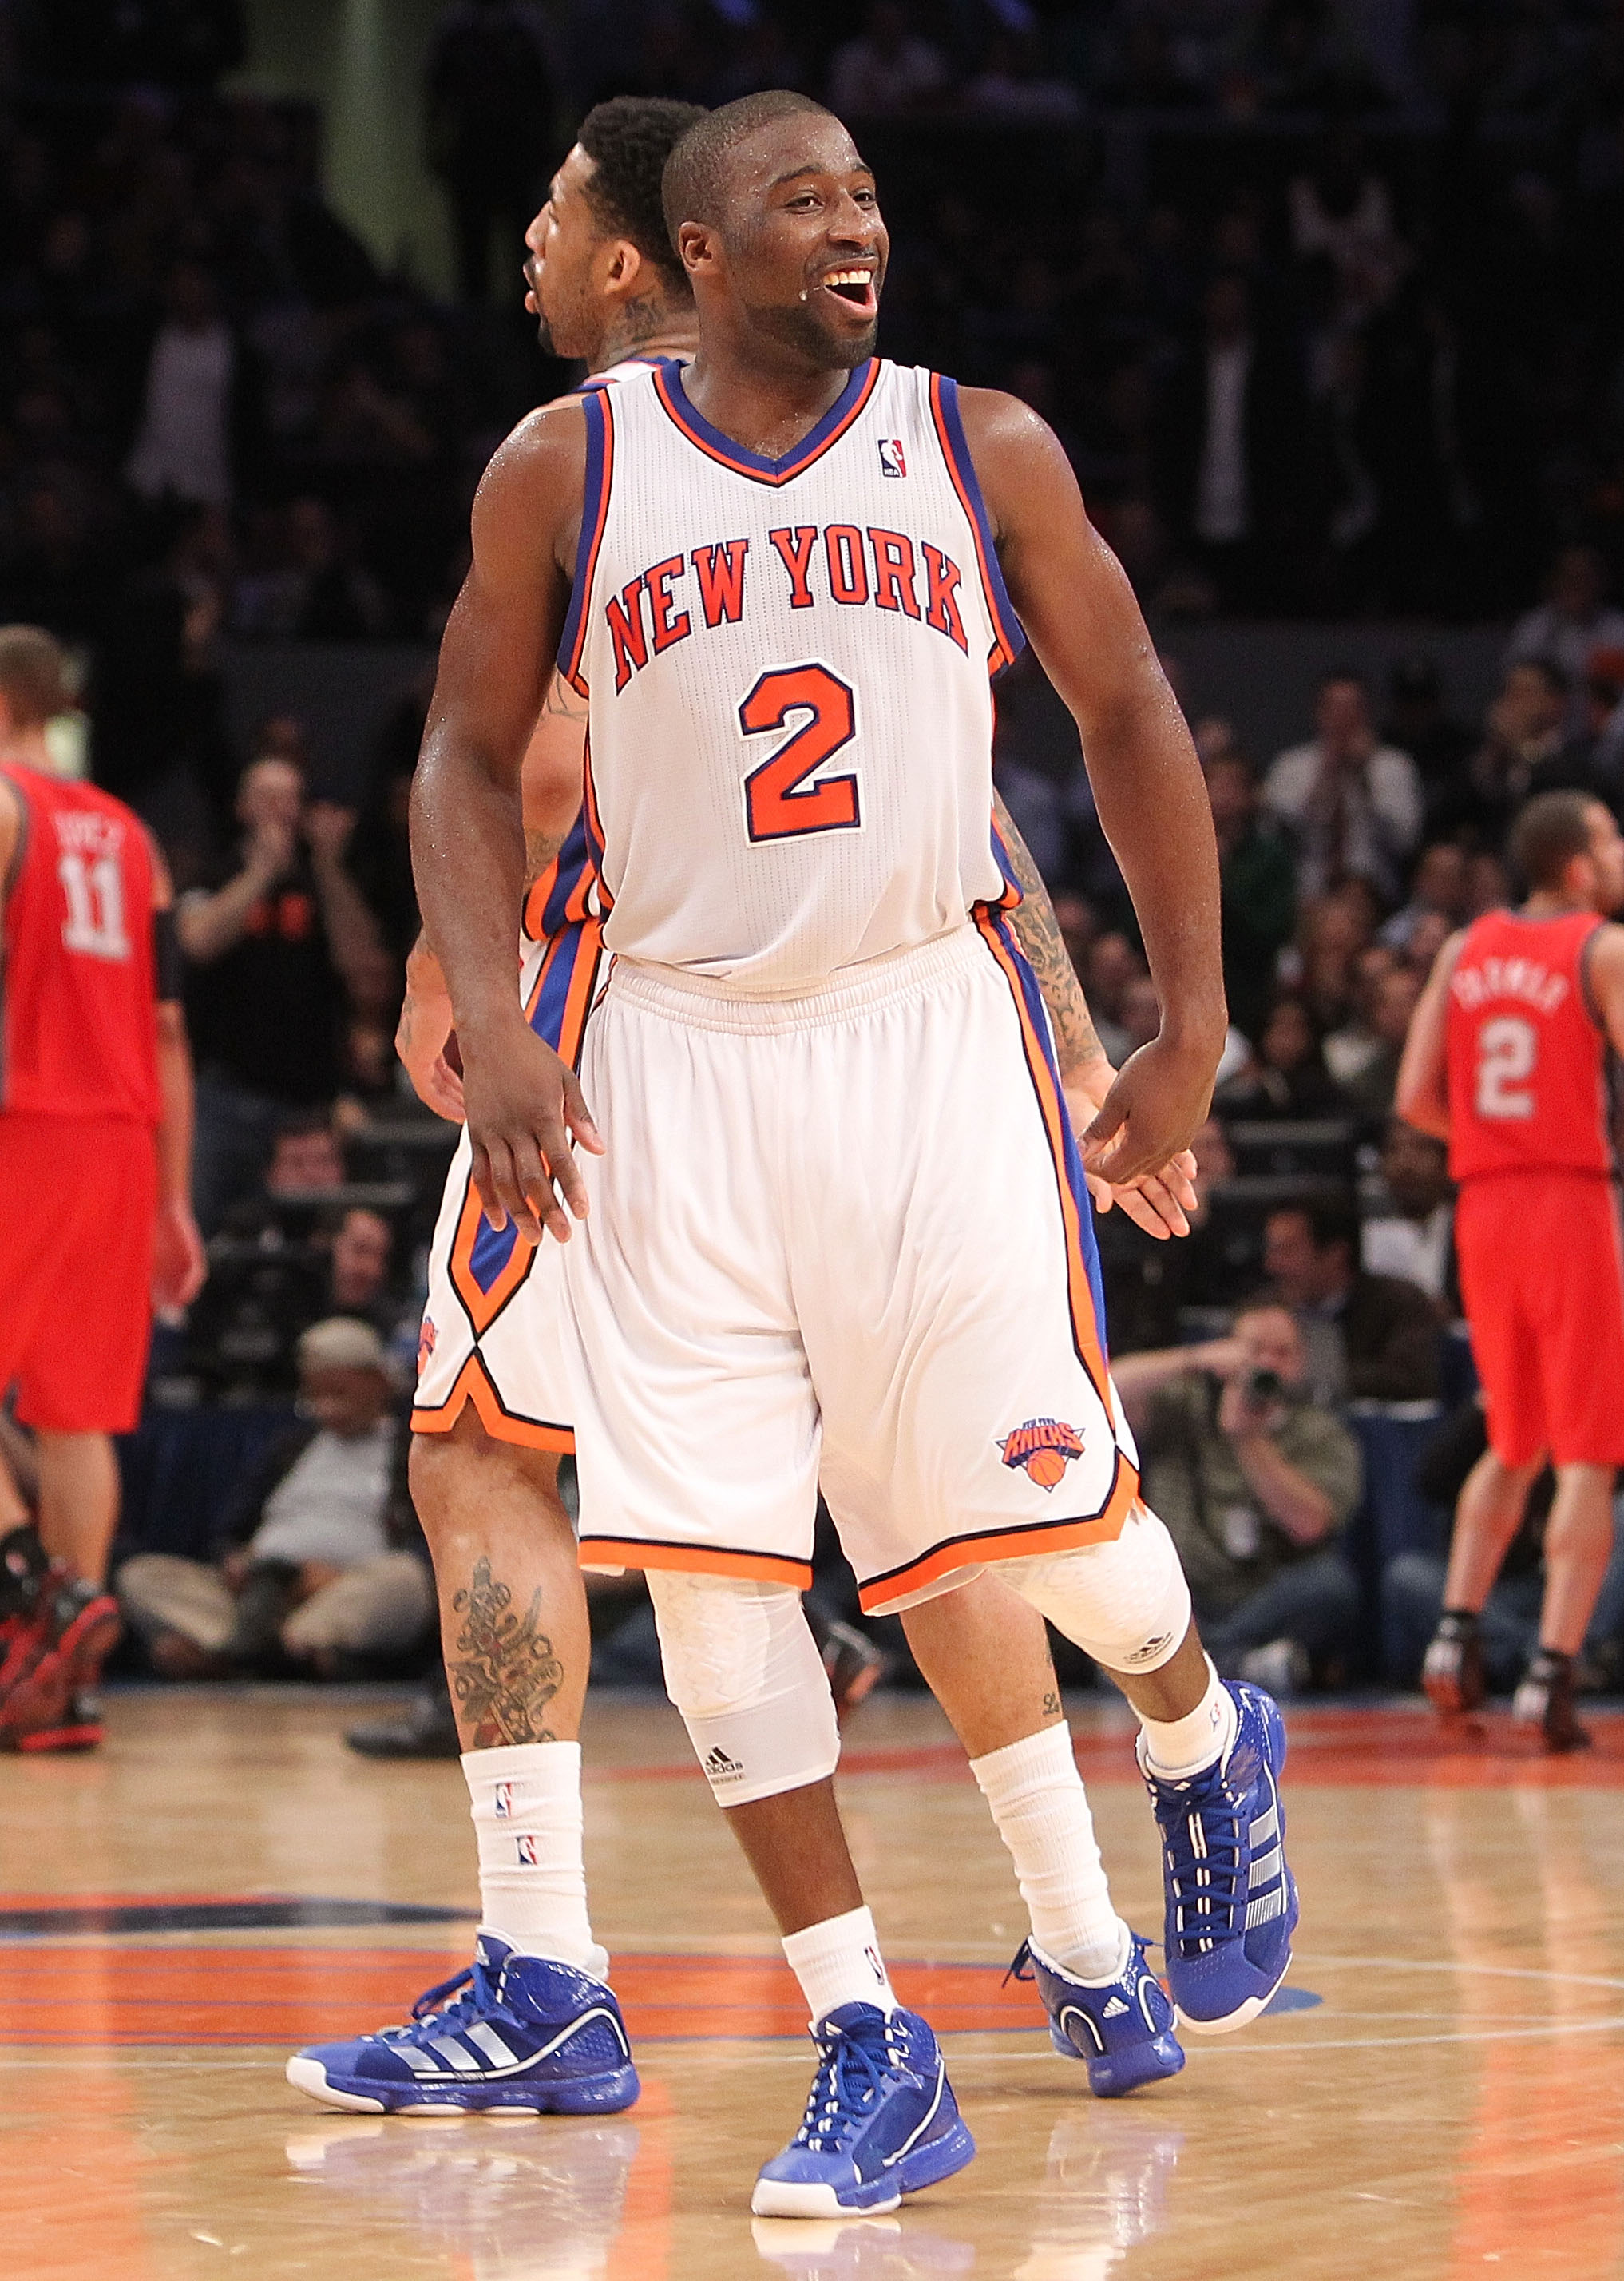 NEW YORK, NY - NOVEMBER 30:  Raymond Felton #2 of the New York Knicks reacts agaisnt the New Jersey Nets on November 30, 2010 at Madison Square Garden in New York City. NOTE TO USER: User expressly acknowledges and agrees that, by downloading and or using